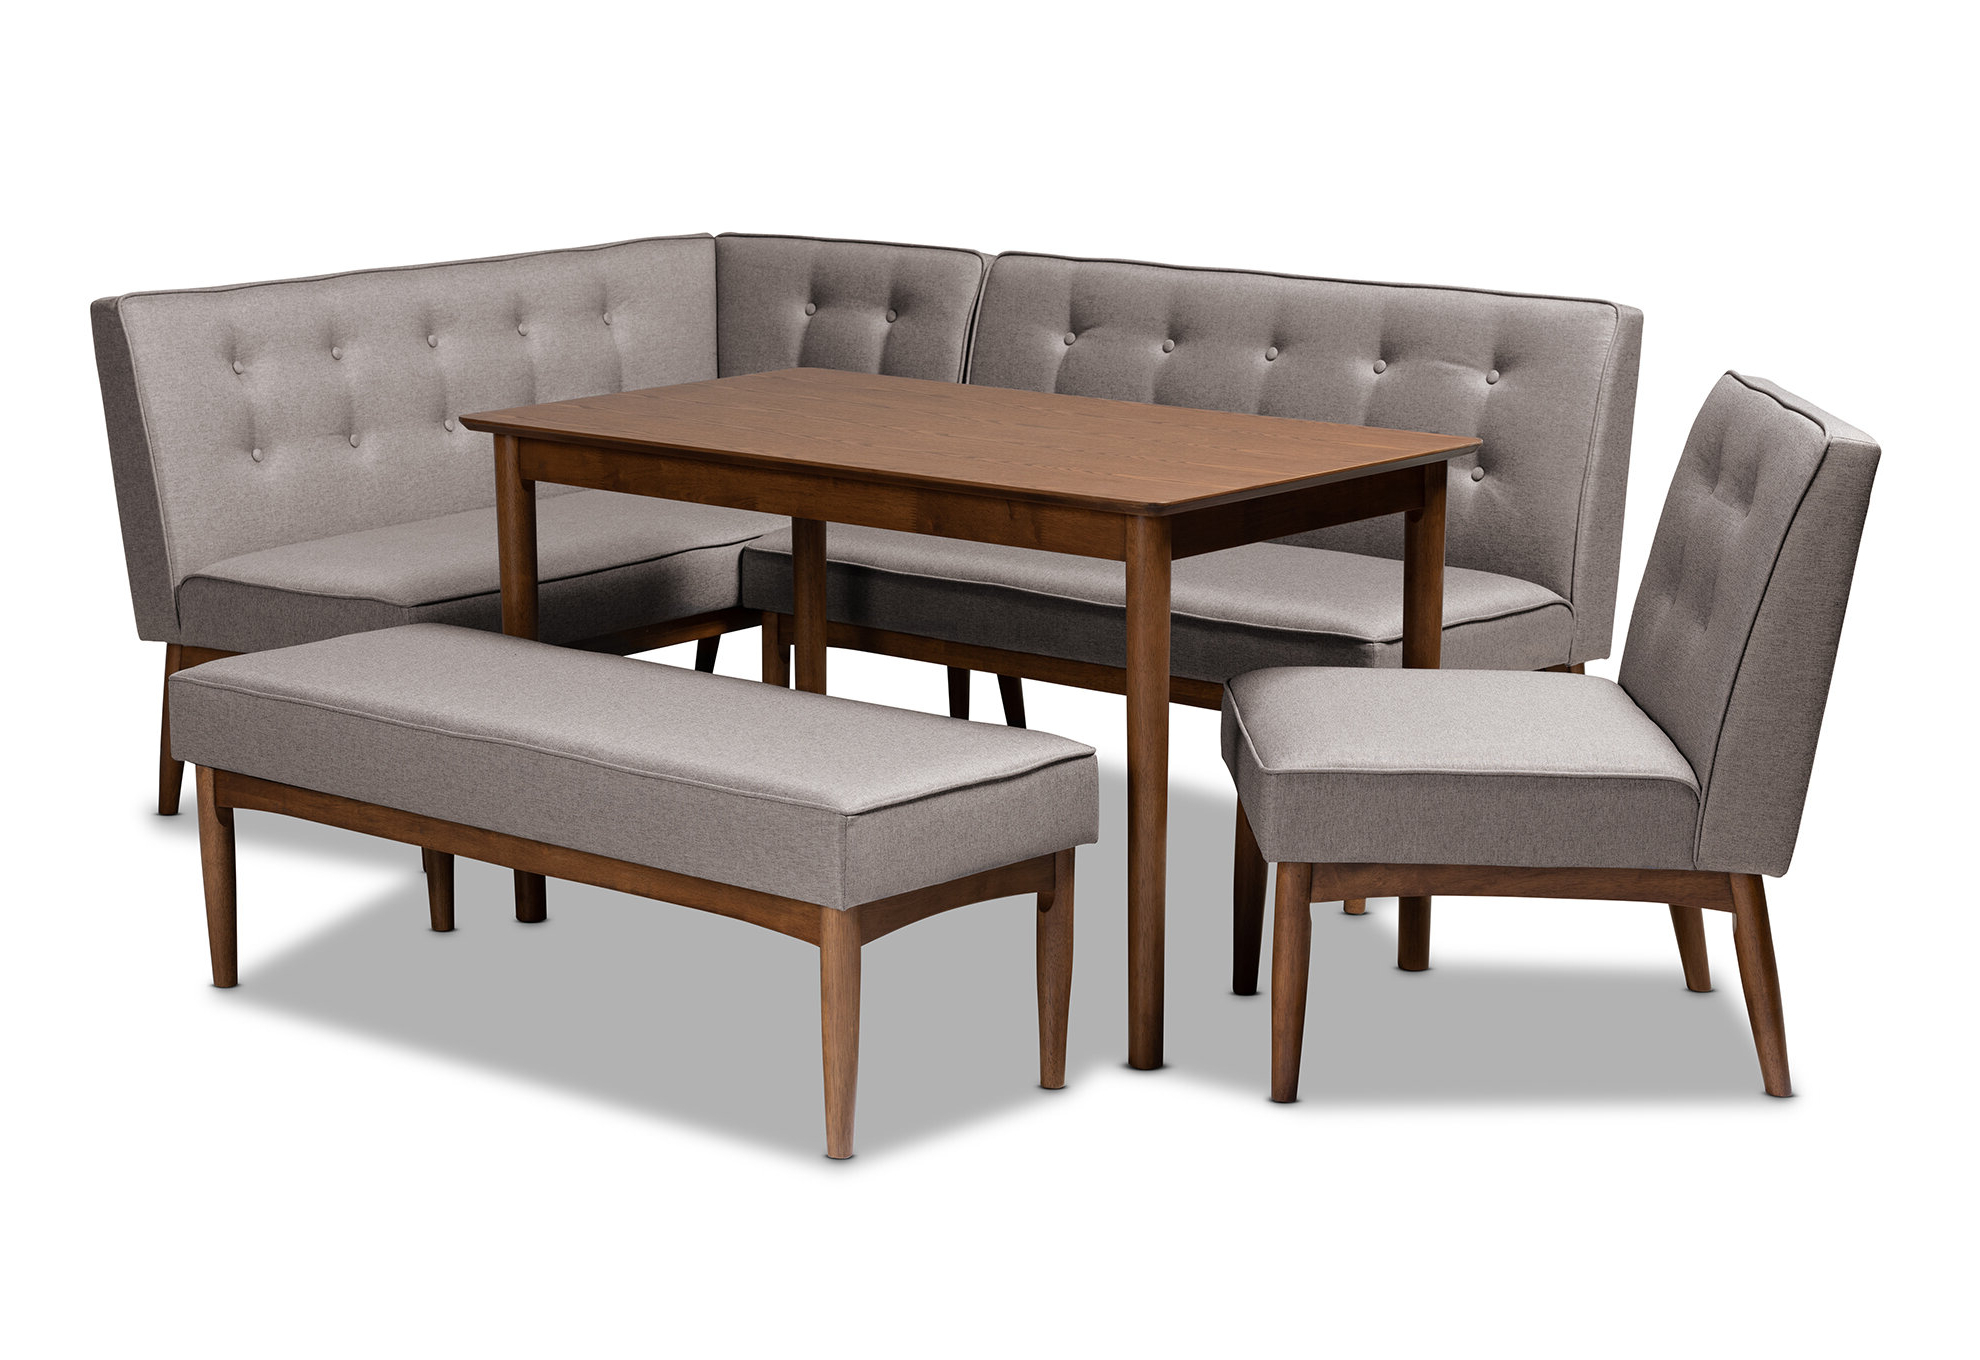 Widely Used Liles 5 Piece Breakfast Nook Dining Sets Pertaining To Bopp Mid Century Modern Upholstered 5 Piece Breakfast Nook Dining Set (View 20 of 20)